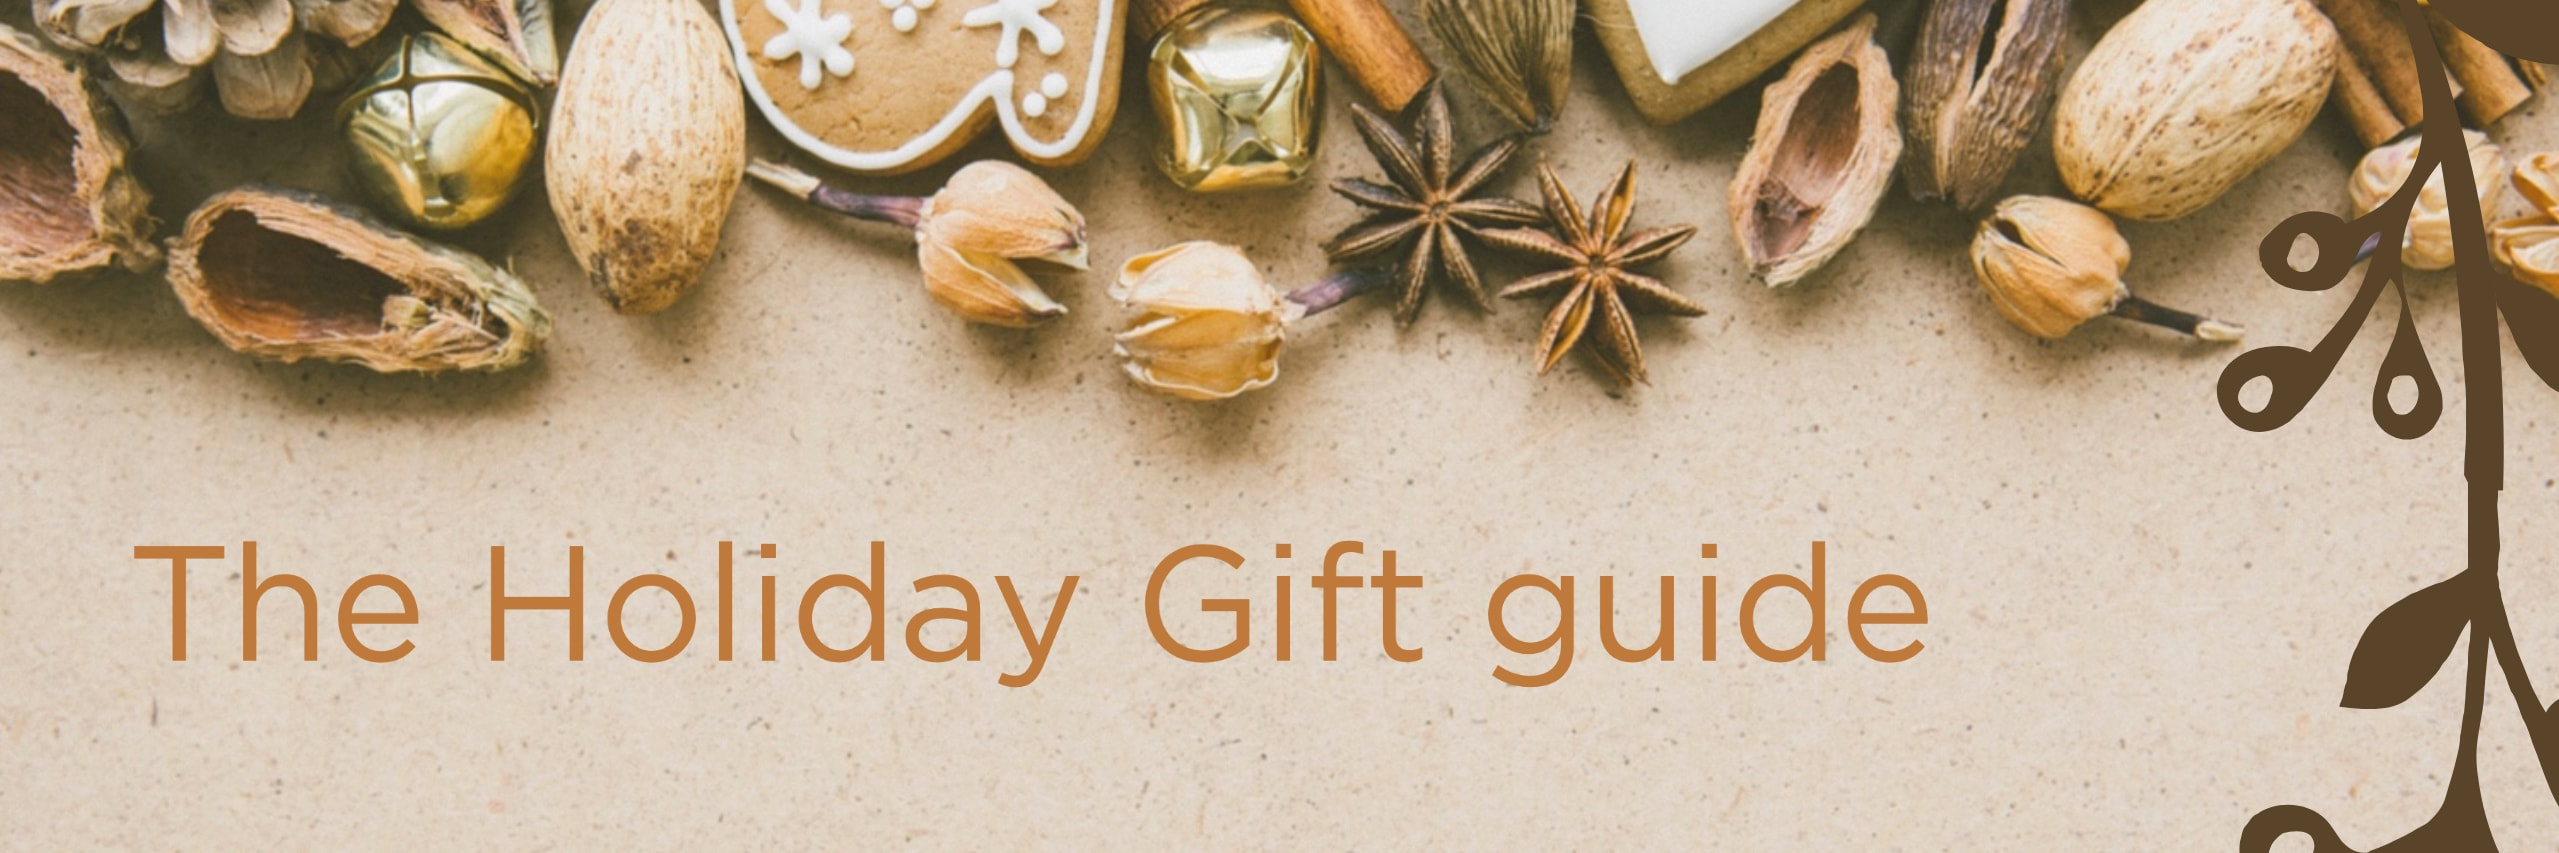 ARC holiday gift guide banner